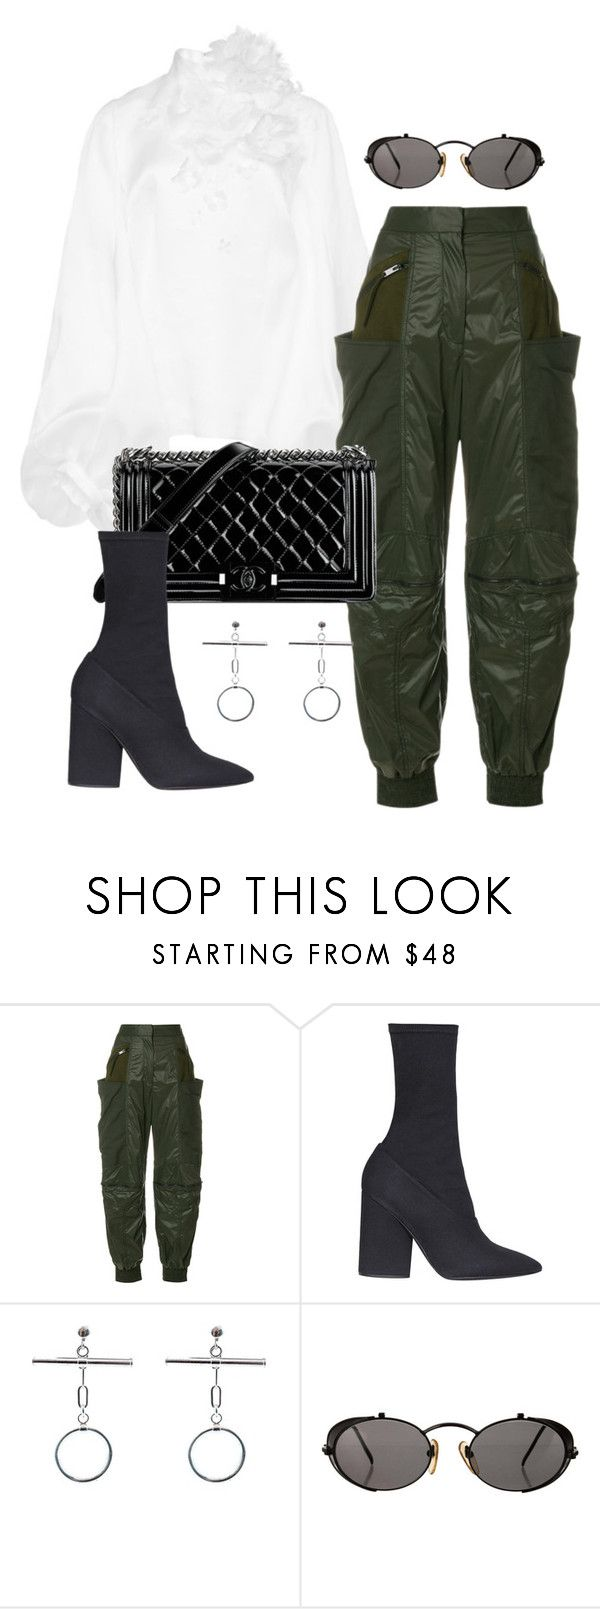 """Untitled #1914"" by emmastrouse ❤ liked on Polyvore featuring STELLA McCARTNEY, Chanel, Yeezy by Kanye West and Jean-Paul Gaultier"